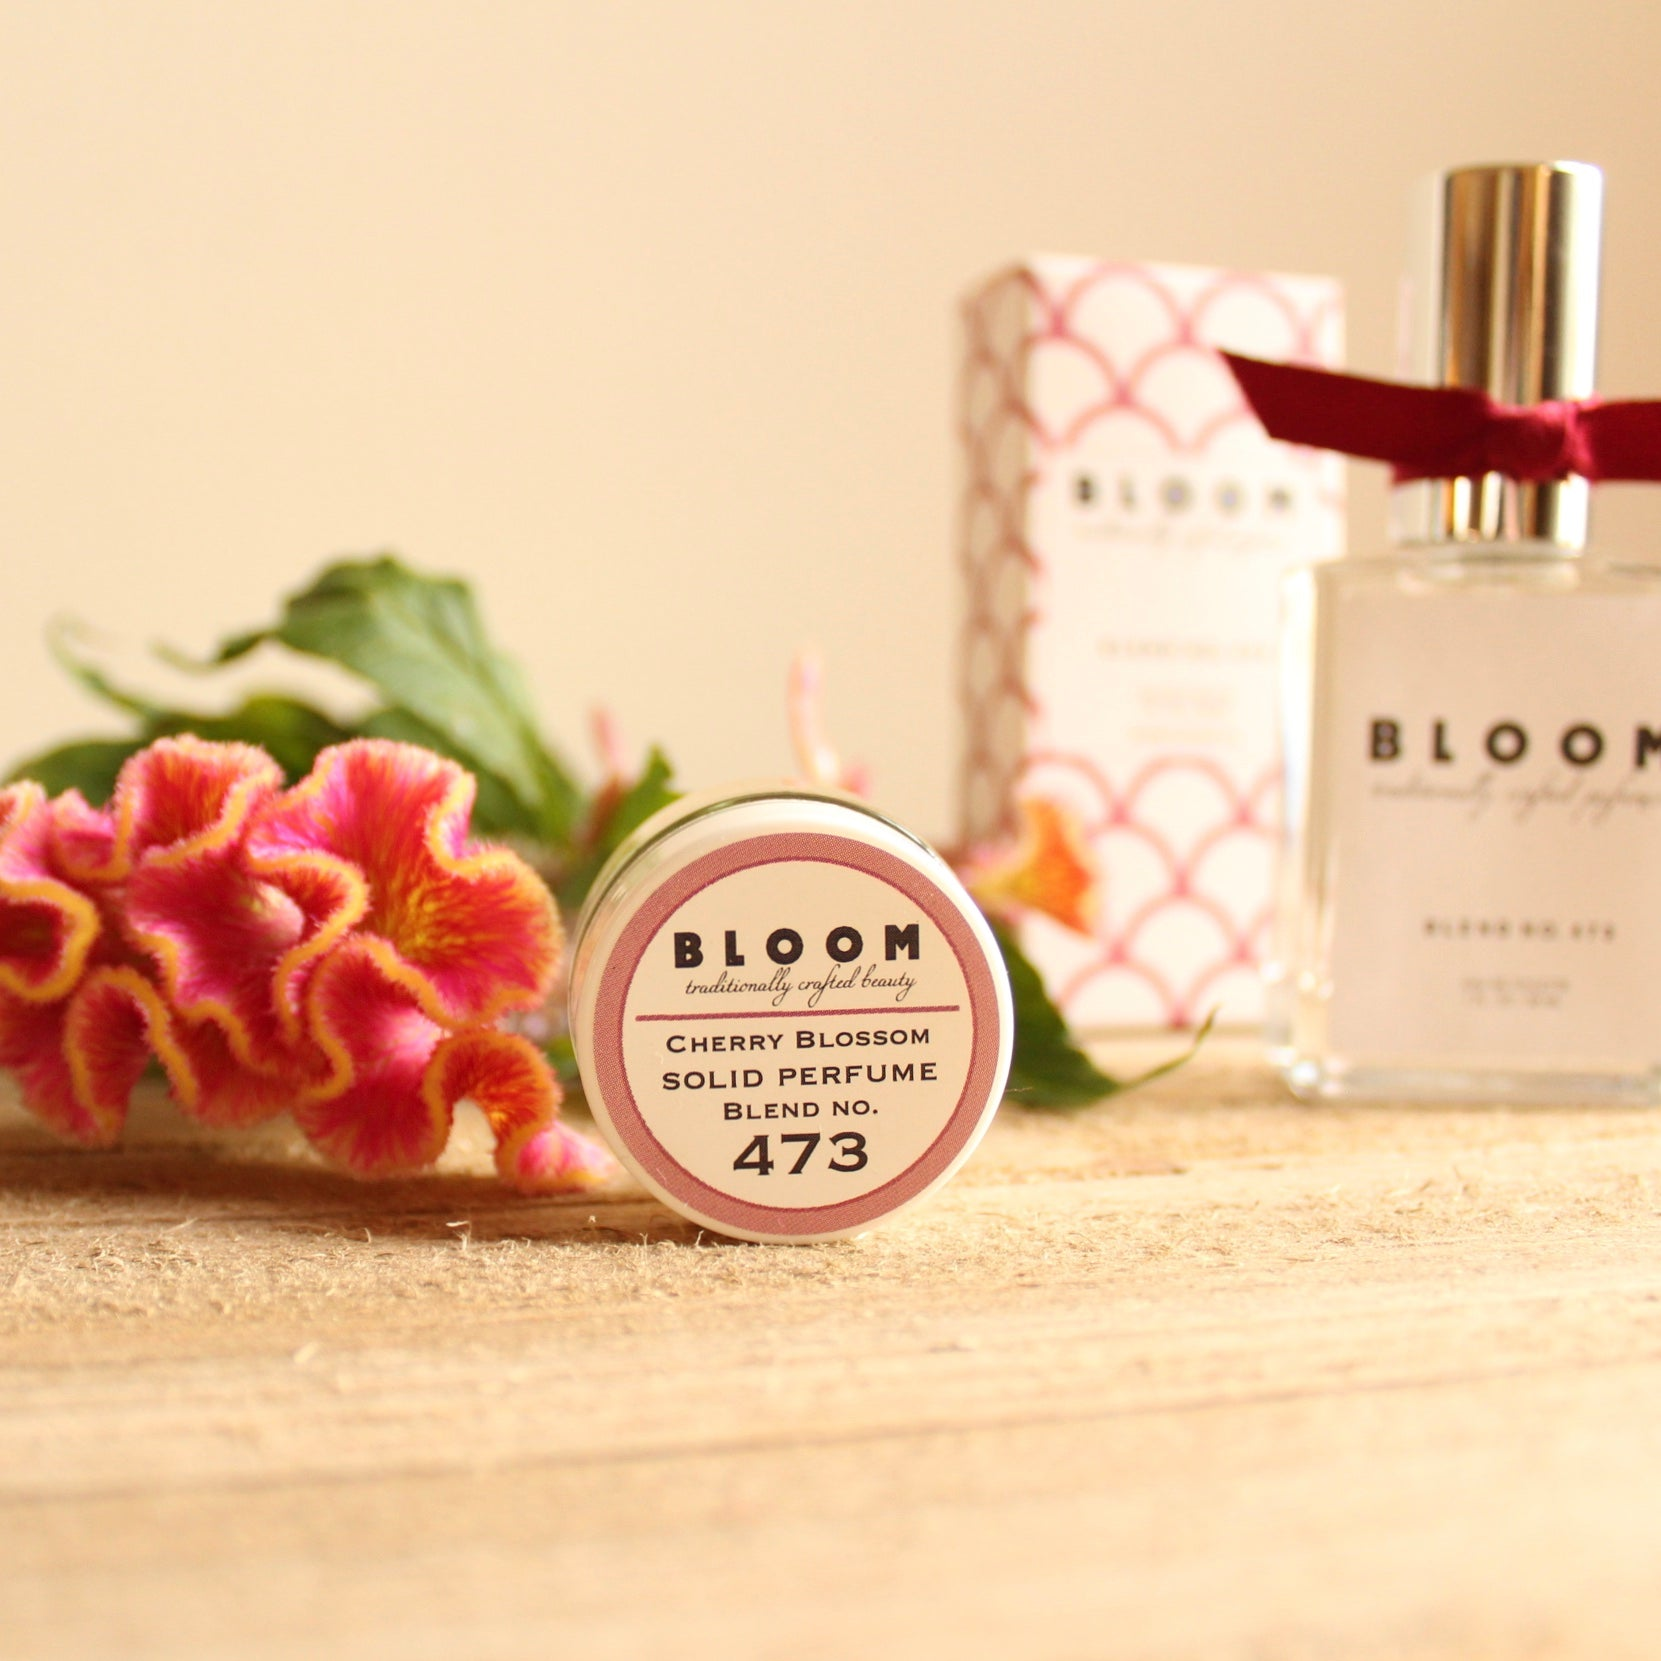 Bloom Perfume - Blend no. 473